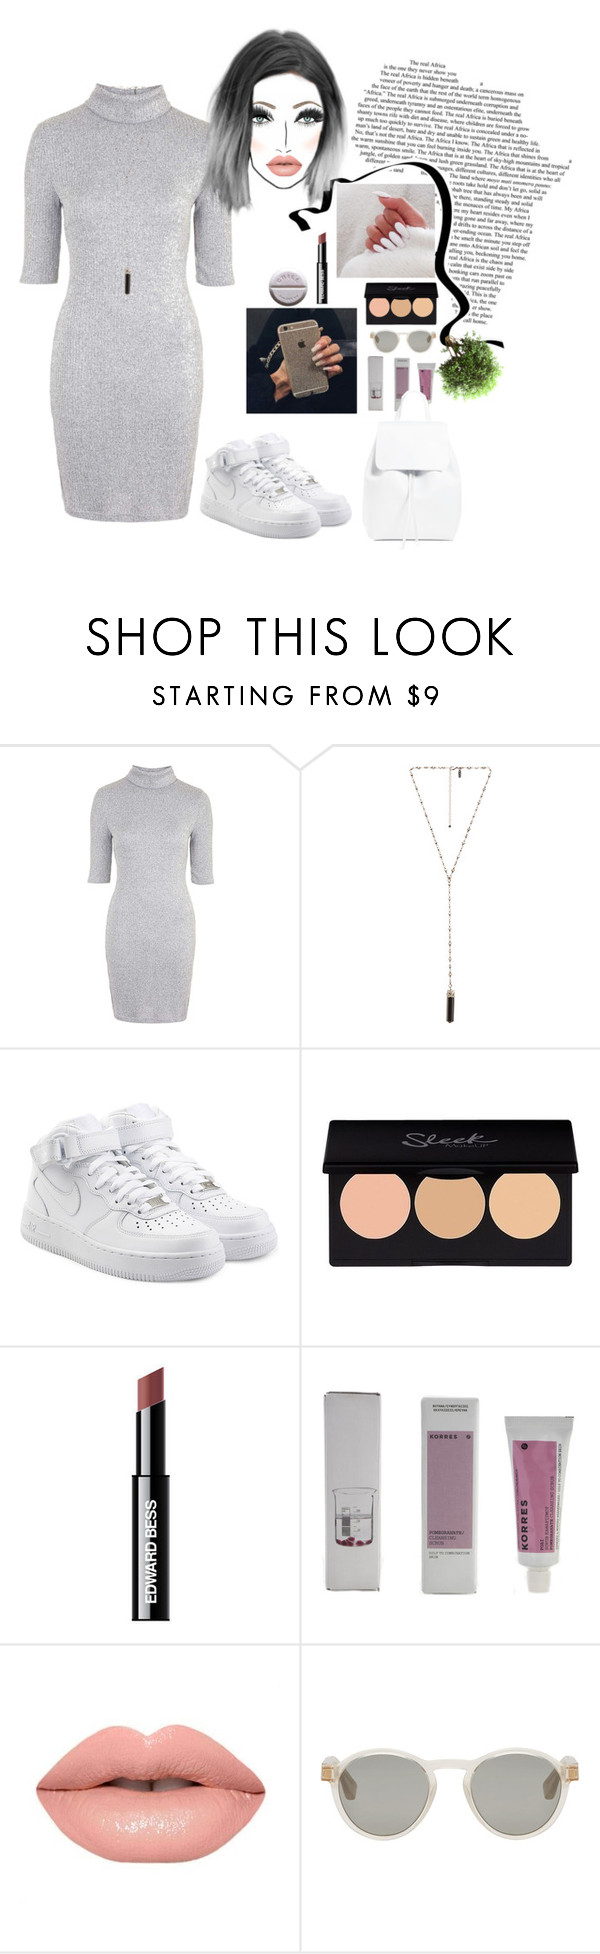 """""""nice"""" by remooooo ❤ liked on Polyvore featuring Topshop, Natalie B, NIKE, Edward Bess, Korres, Maison Margiela and Mansur Gavriel"""